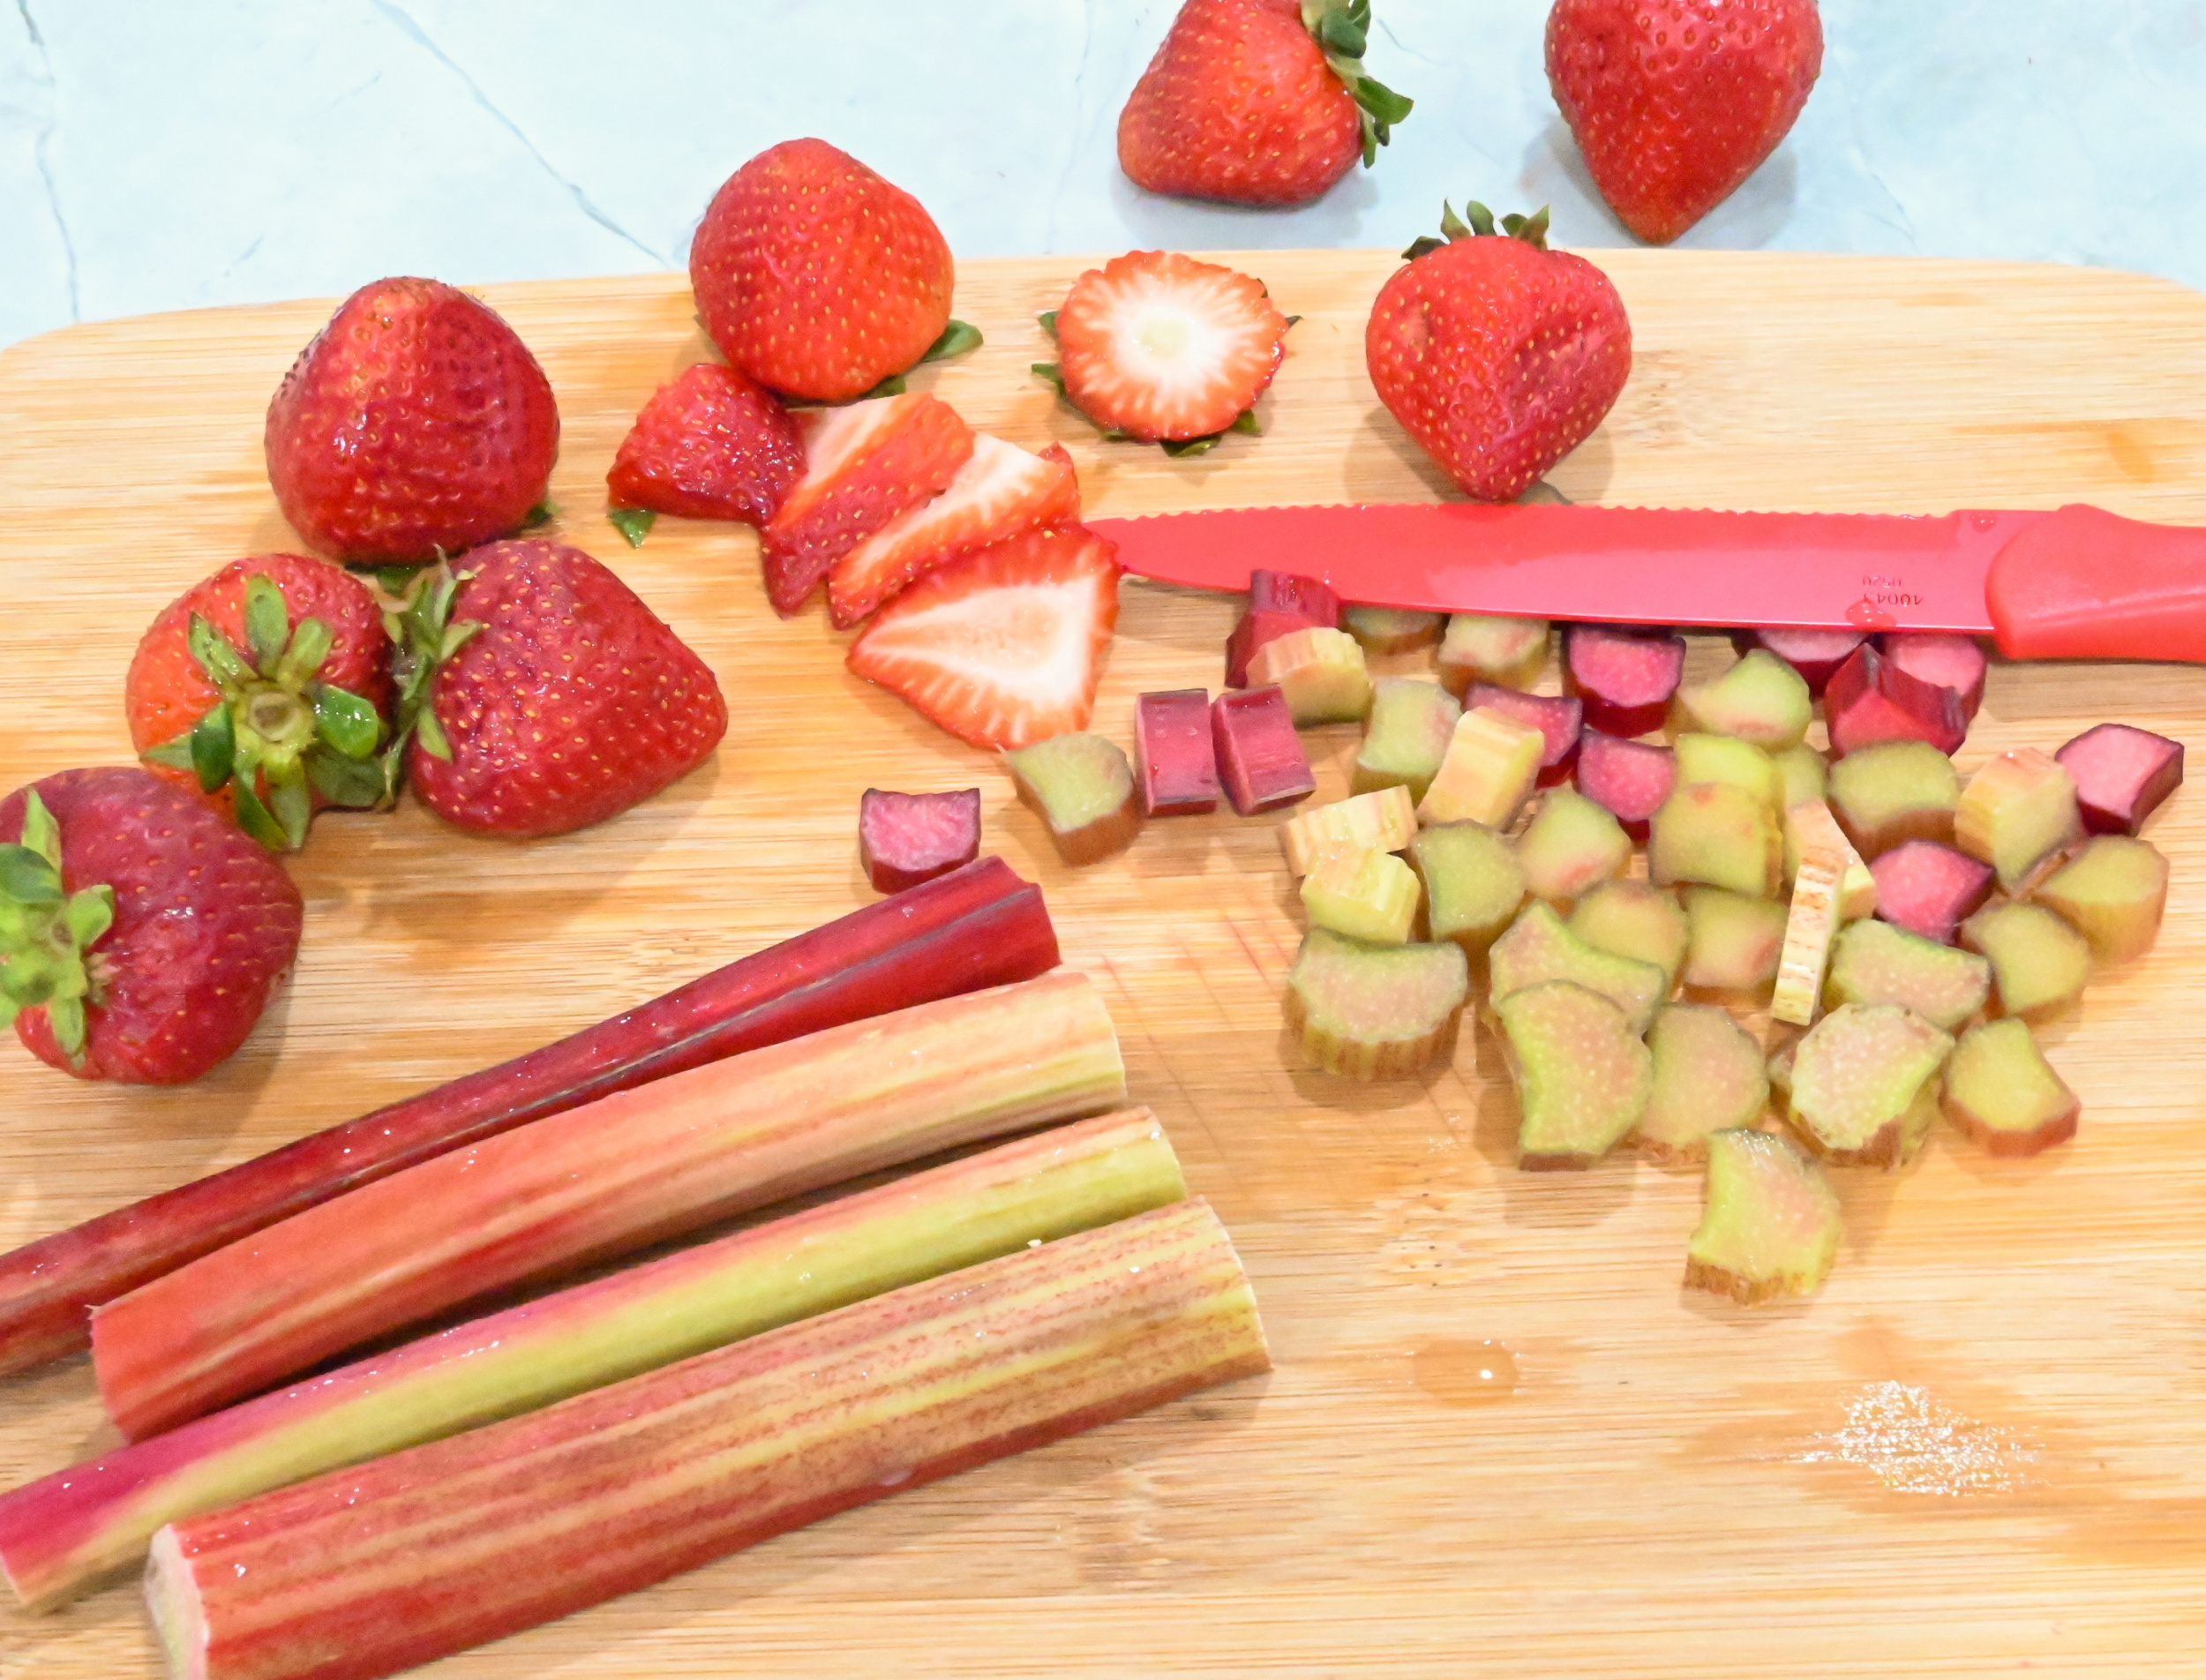 strawberry and rhubarb slices